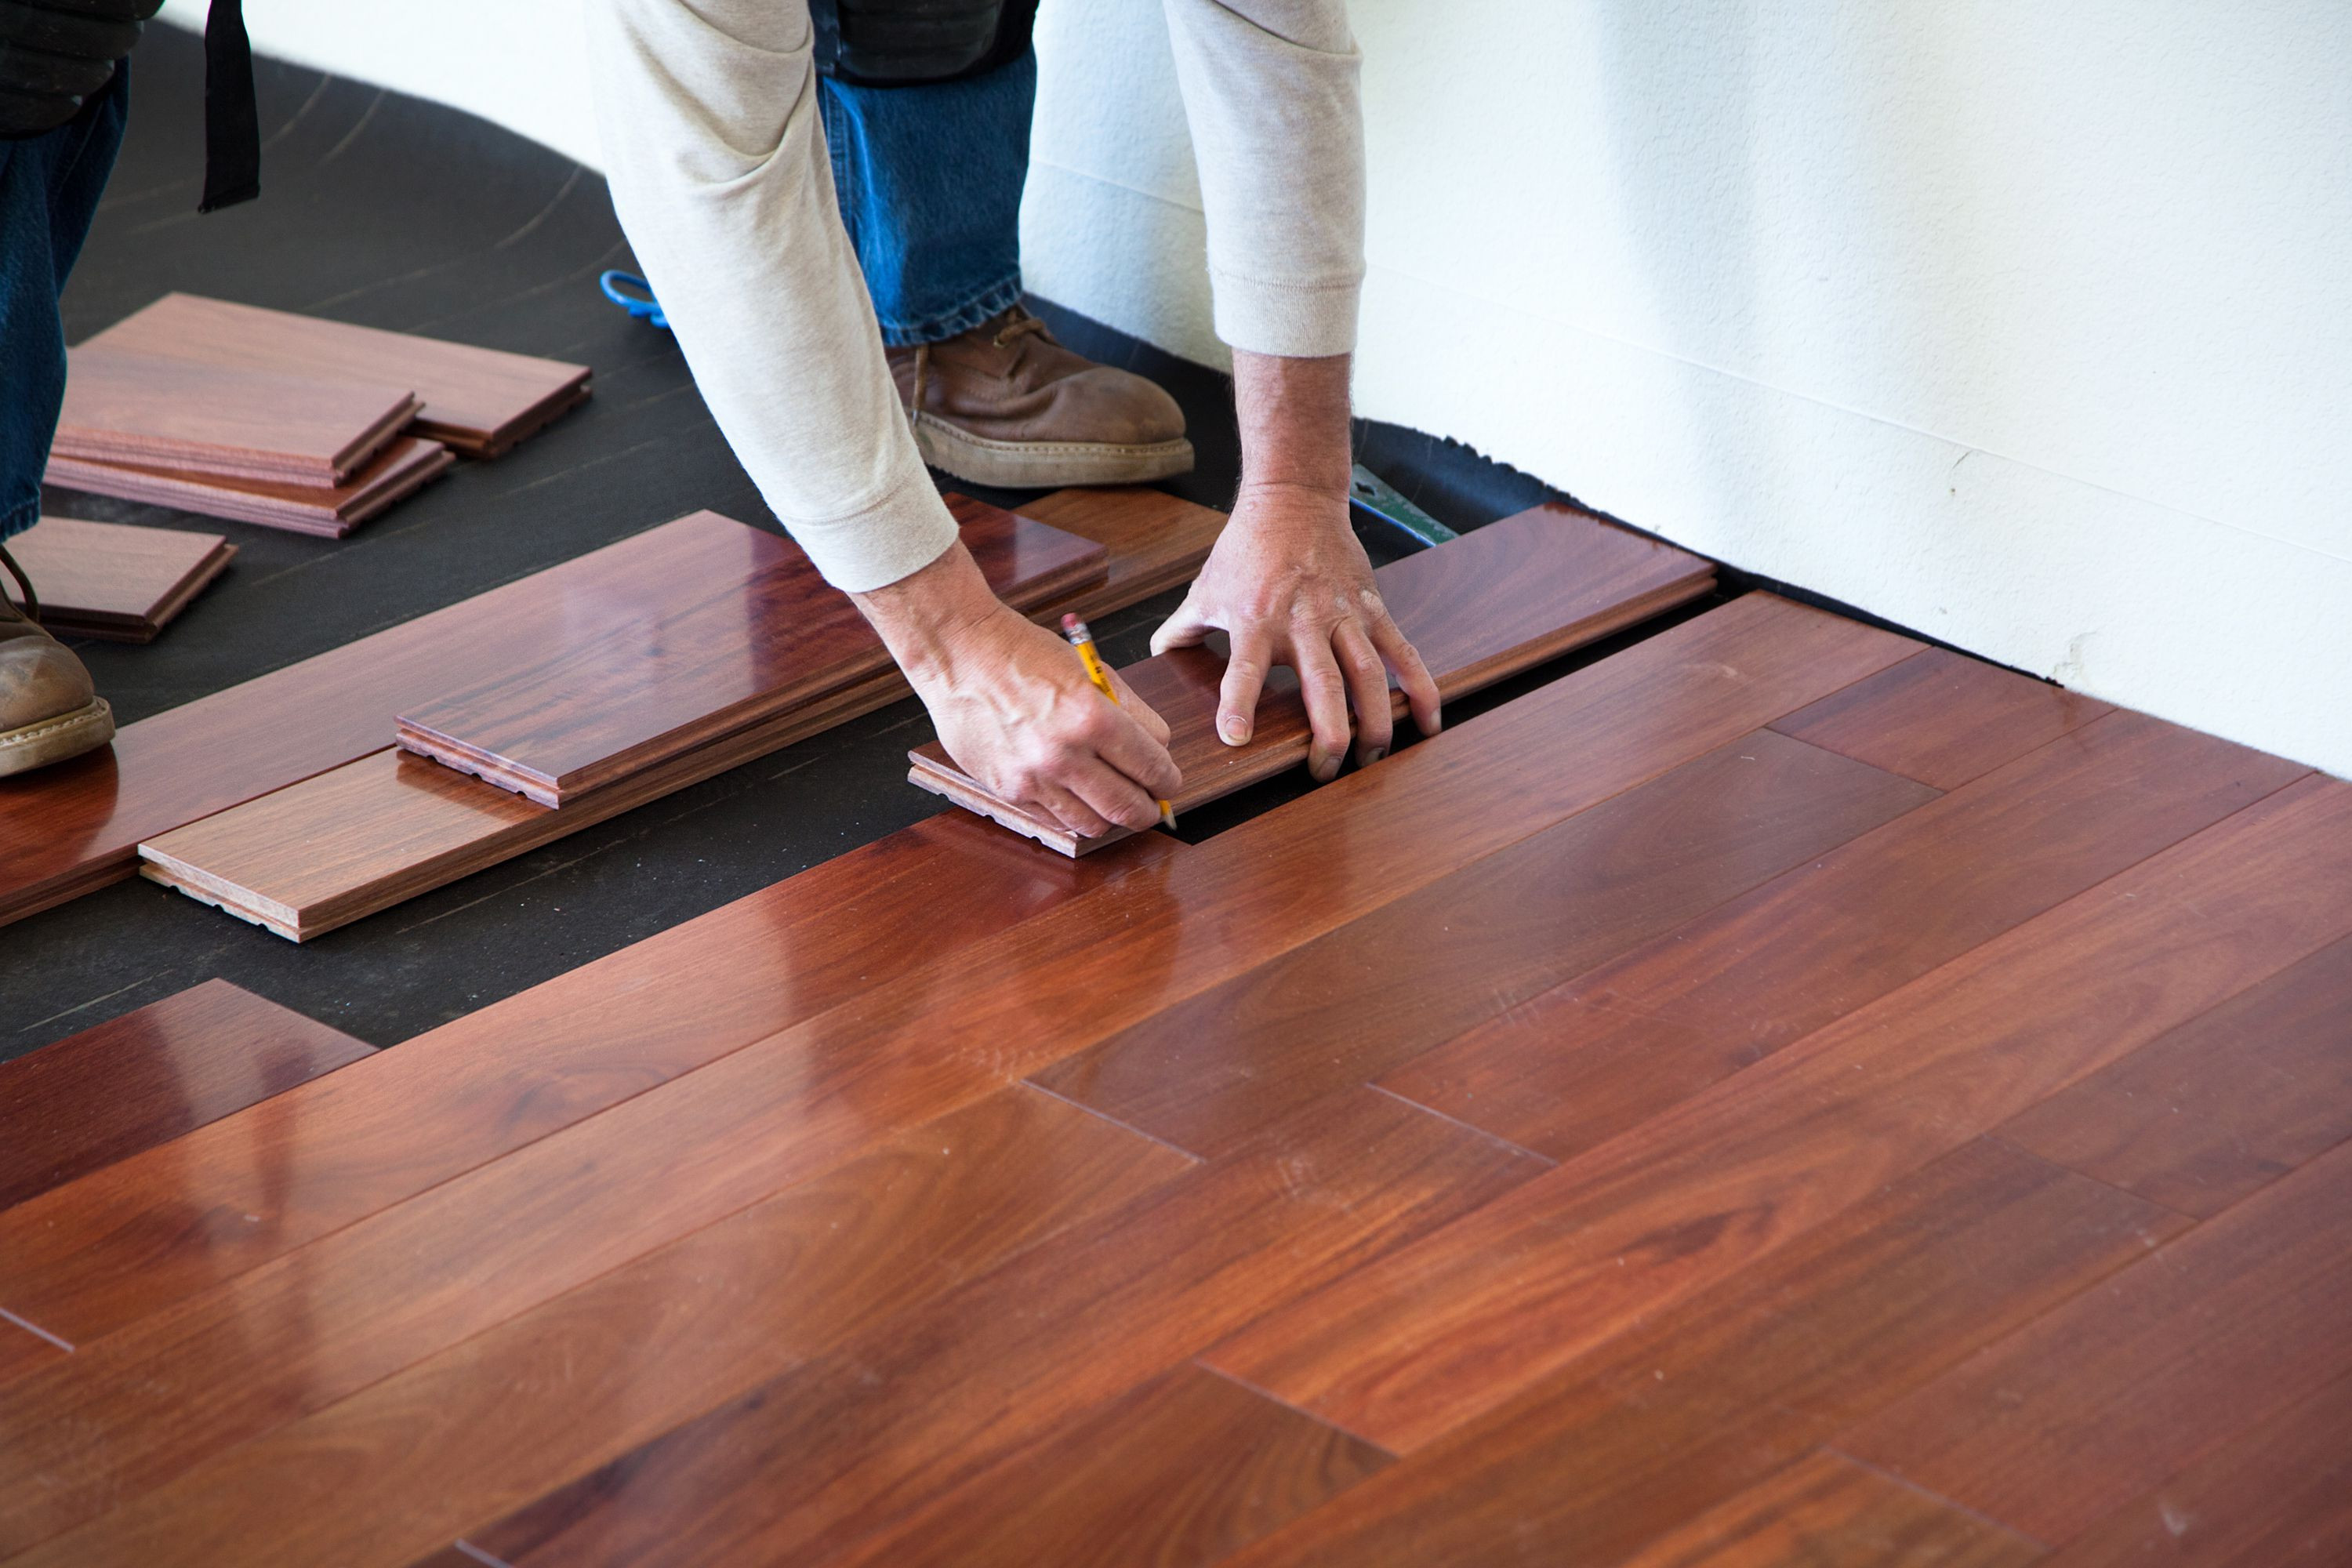 10 Spectacular Hardwood Flooring Glued to Concrete 2021 free download hardwood flooring glued to concrete of the subfloor is the foundation of a good floor in installing hardwood floor 170040982 582b748c5f9b58d5b17d0c58